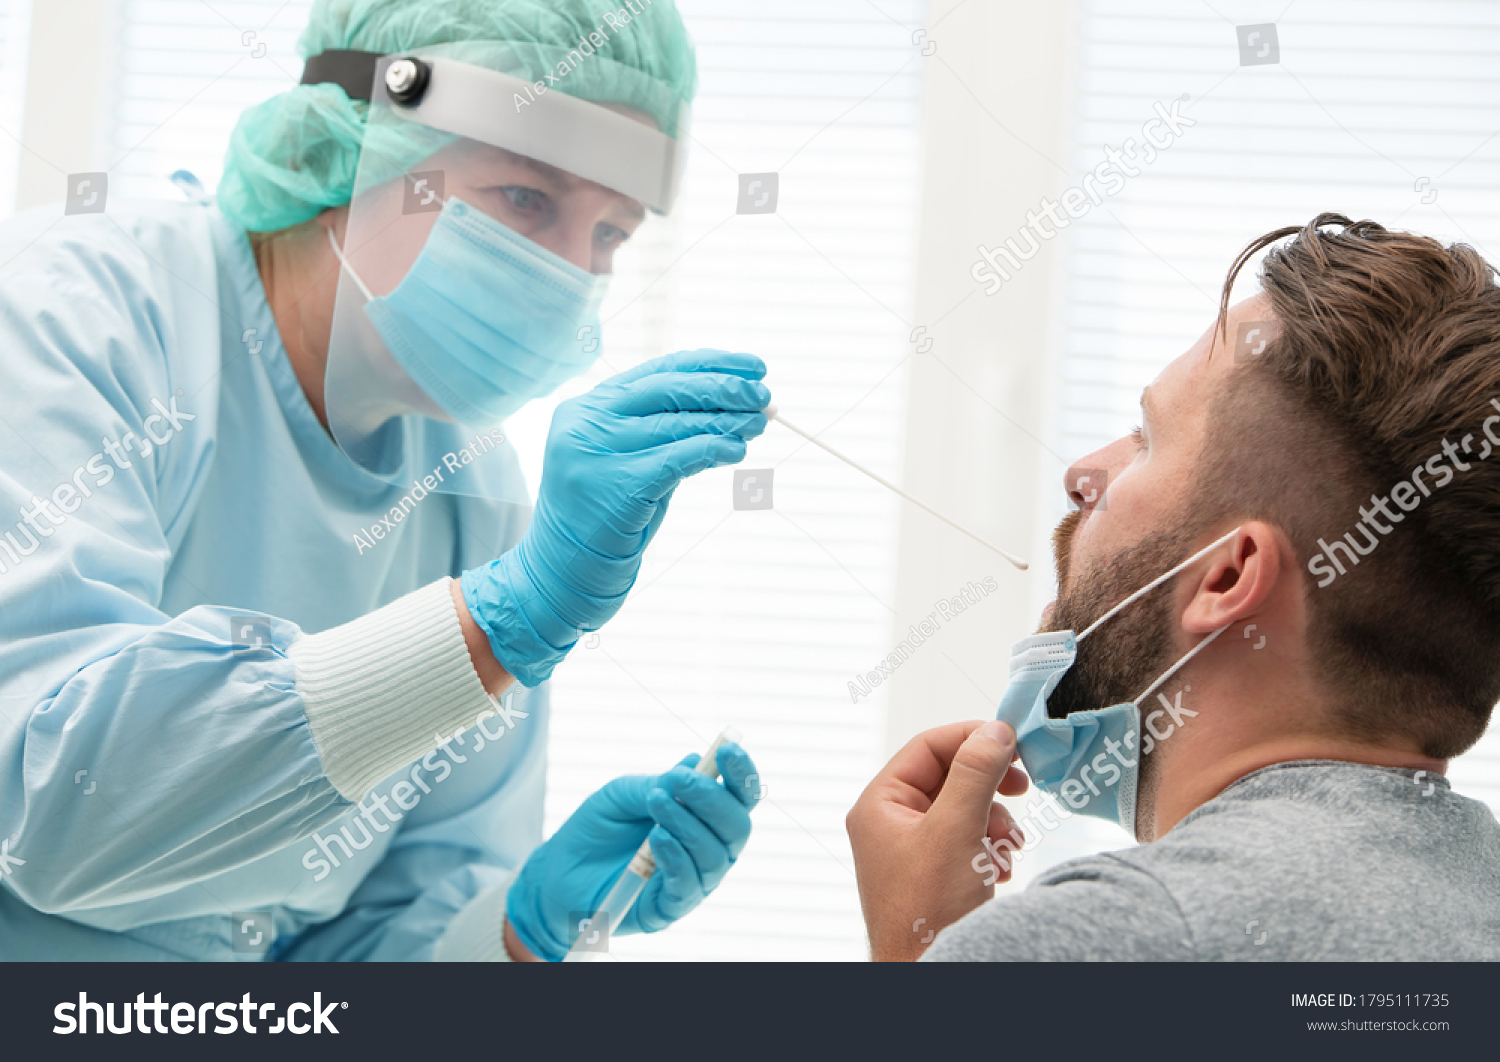 Doctor in a protective suit taking a throat and nasal swab from a patient to test for possible coronavirus infection #1795111735